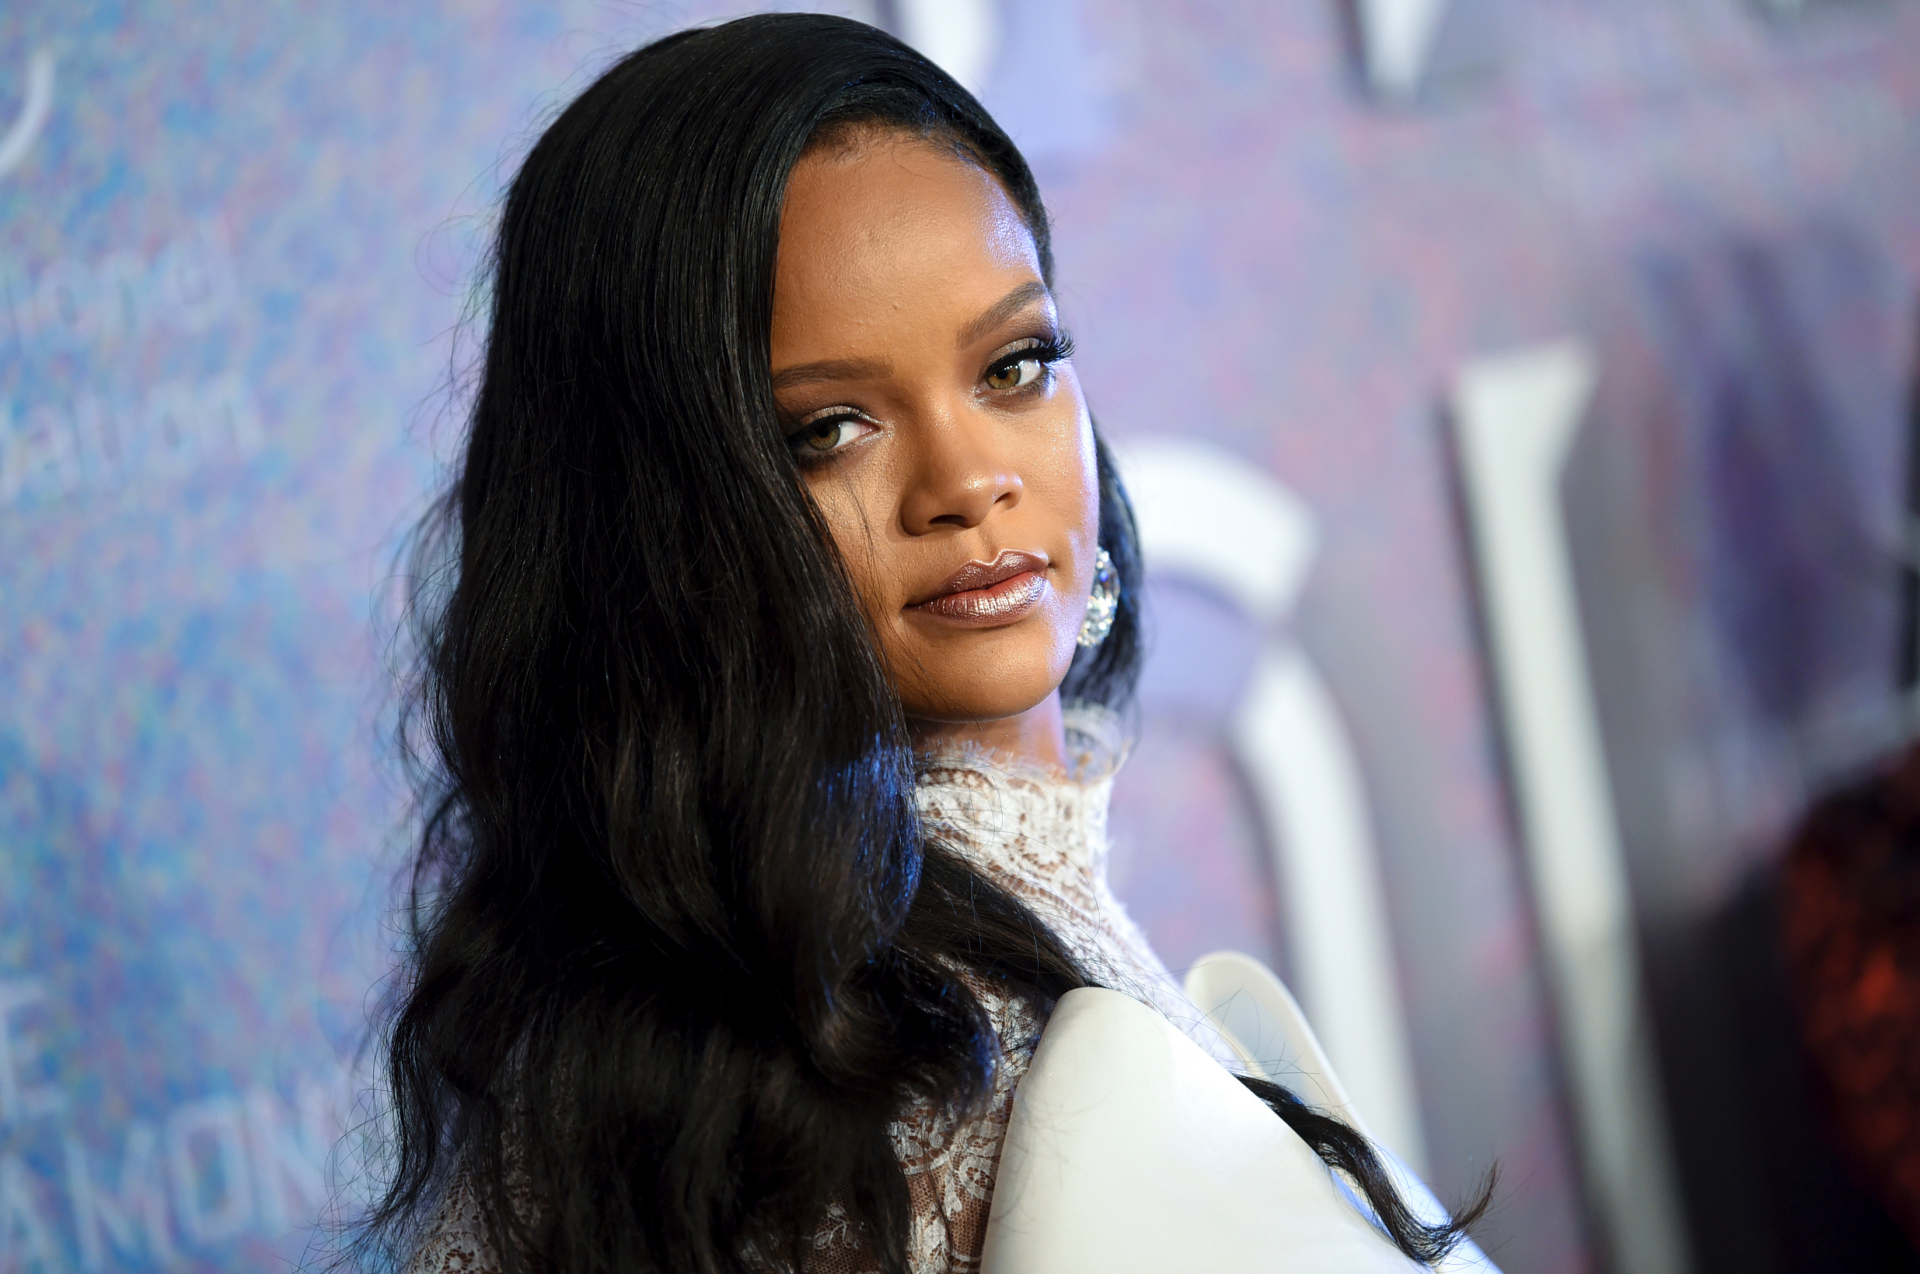 Westlake Legal Group ContentBroker_contentid-9ee2c111f7f248f6a882cb0f7bc56153 Rihanna calls Trump 'most mentally ill human being in America' Nate Day fox-news/entertainment/music fox-news/entertainment/genres/political fox-news/entertainment/celebrity-news fox-news/entertainment fox news fnc/entertainment fnc eab4c5d9-5994-5751-bb00-be78a8659867 article